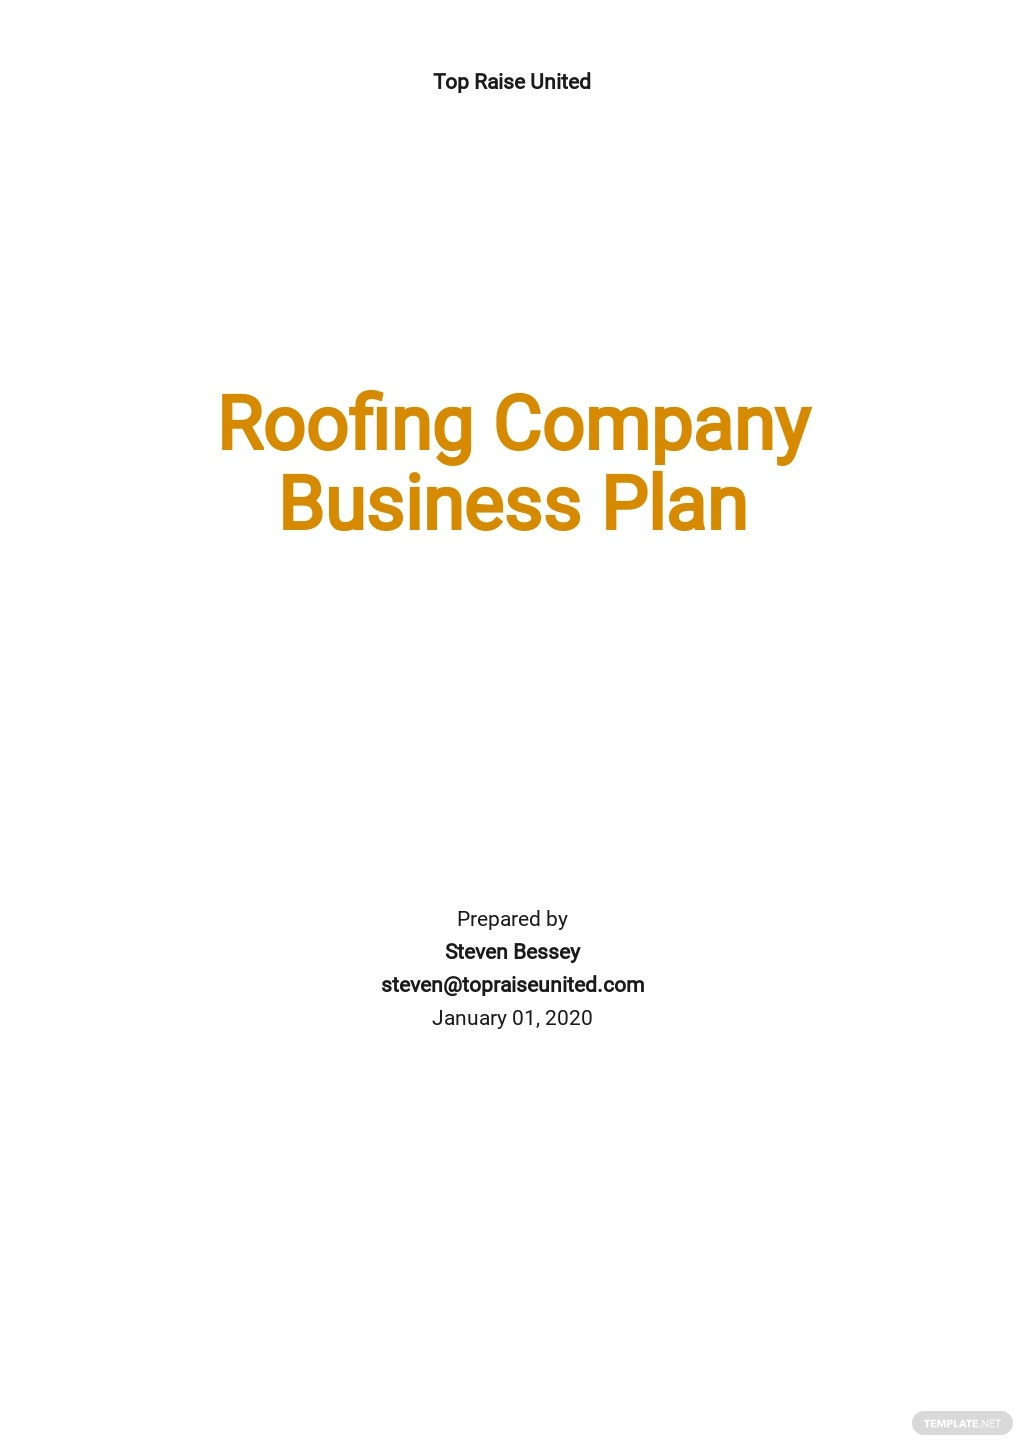 Roofing Company Business Plan Template.jpe